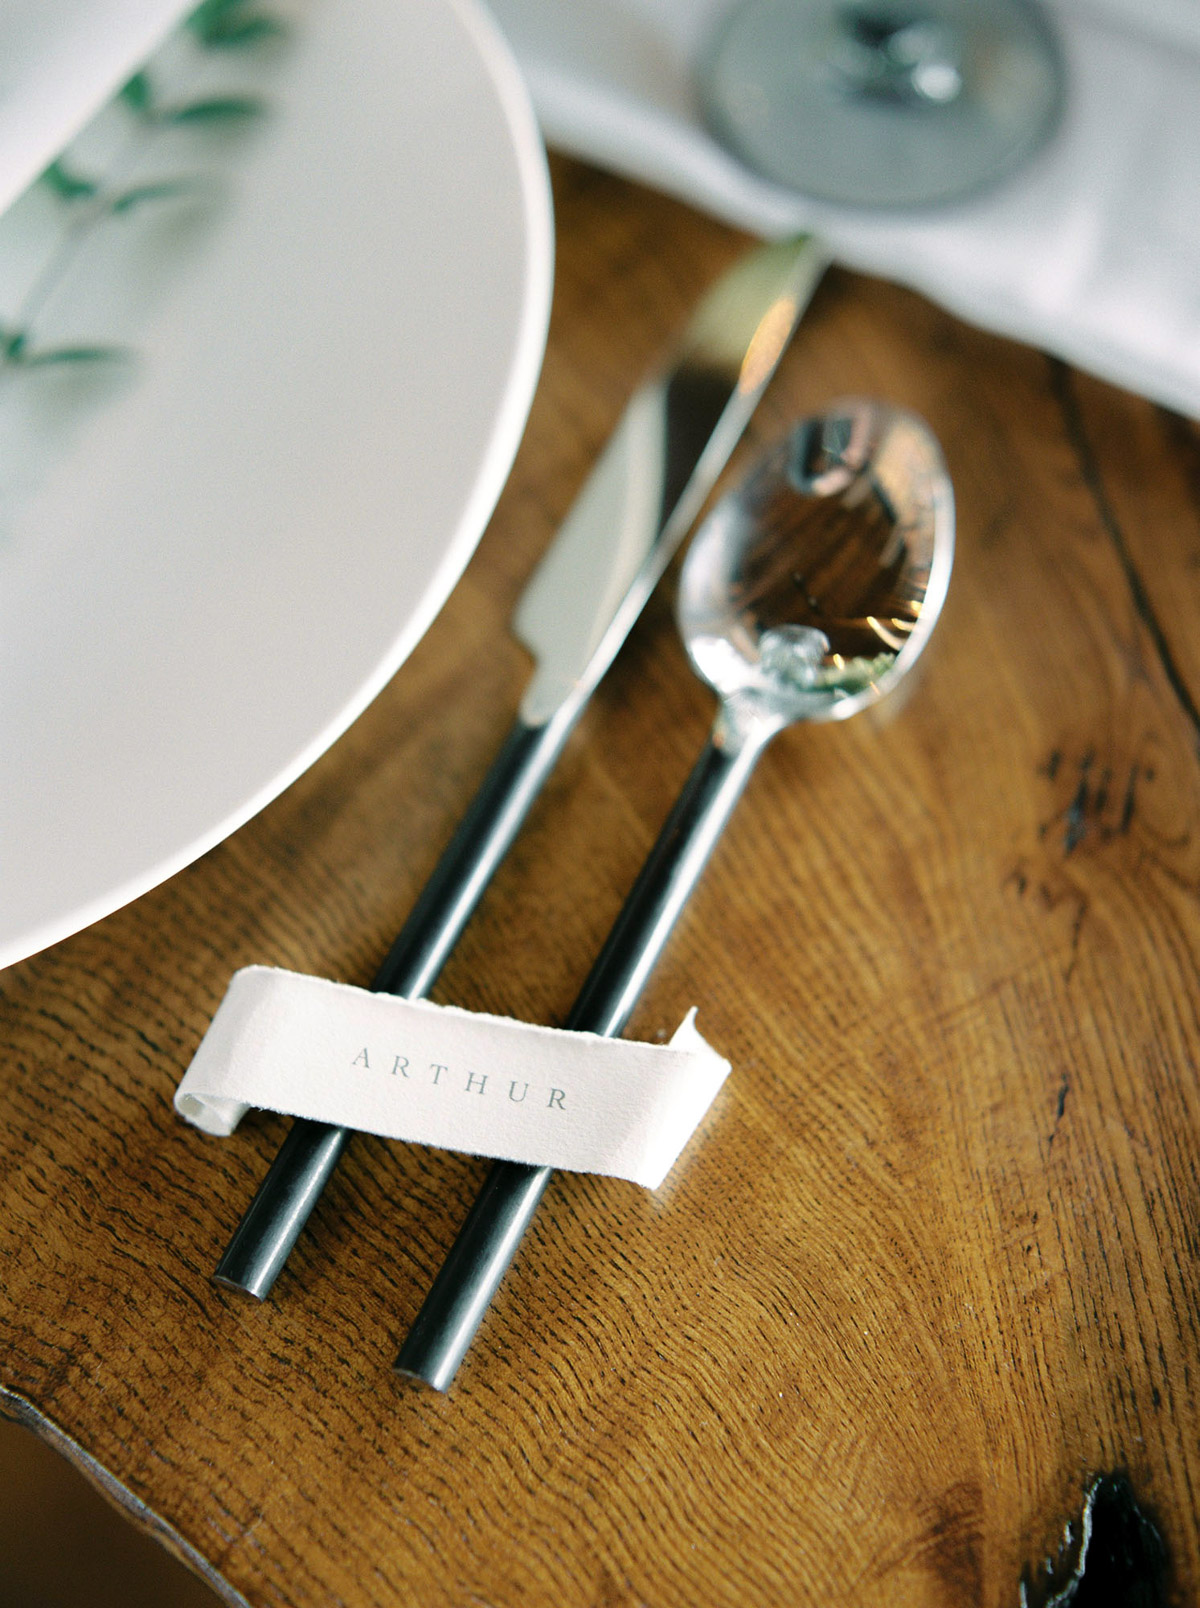 will-reid-photo-vineyard-bride-swish-list-kurtz-orchards-market-niagara-on-the-lake-wedding-editorial-2.jpg